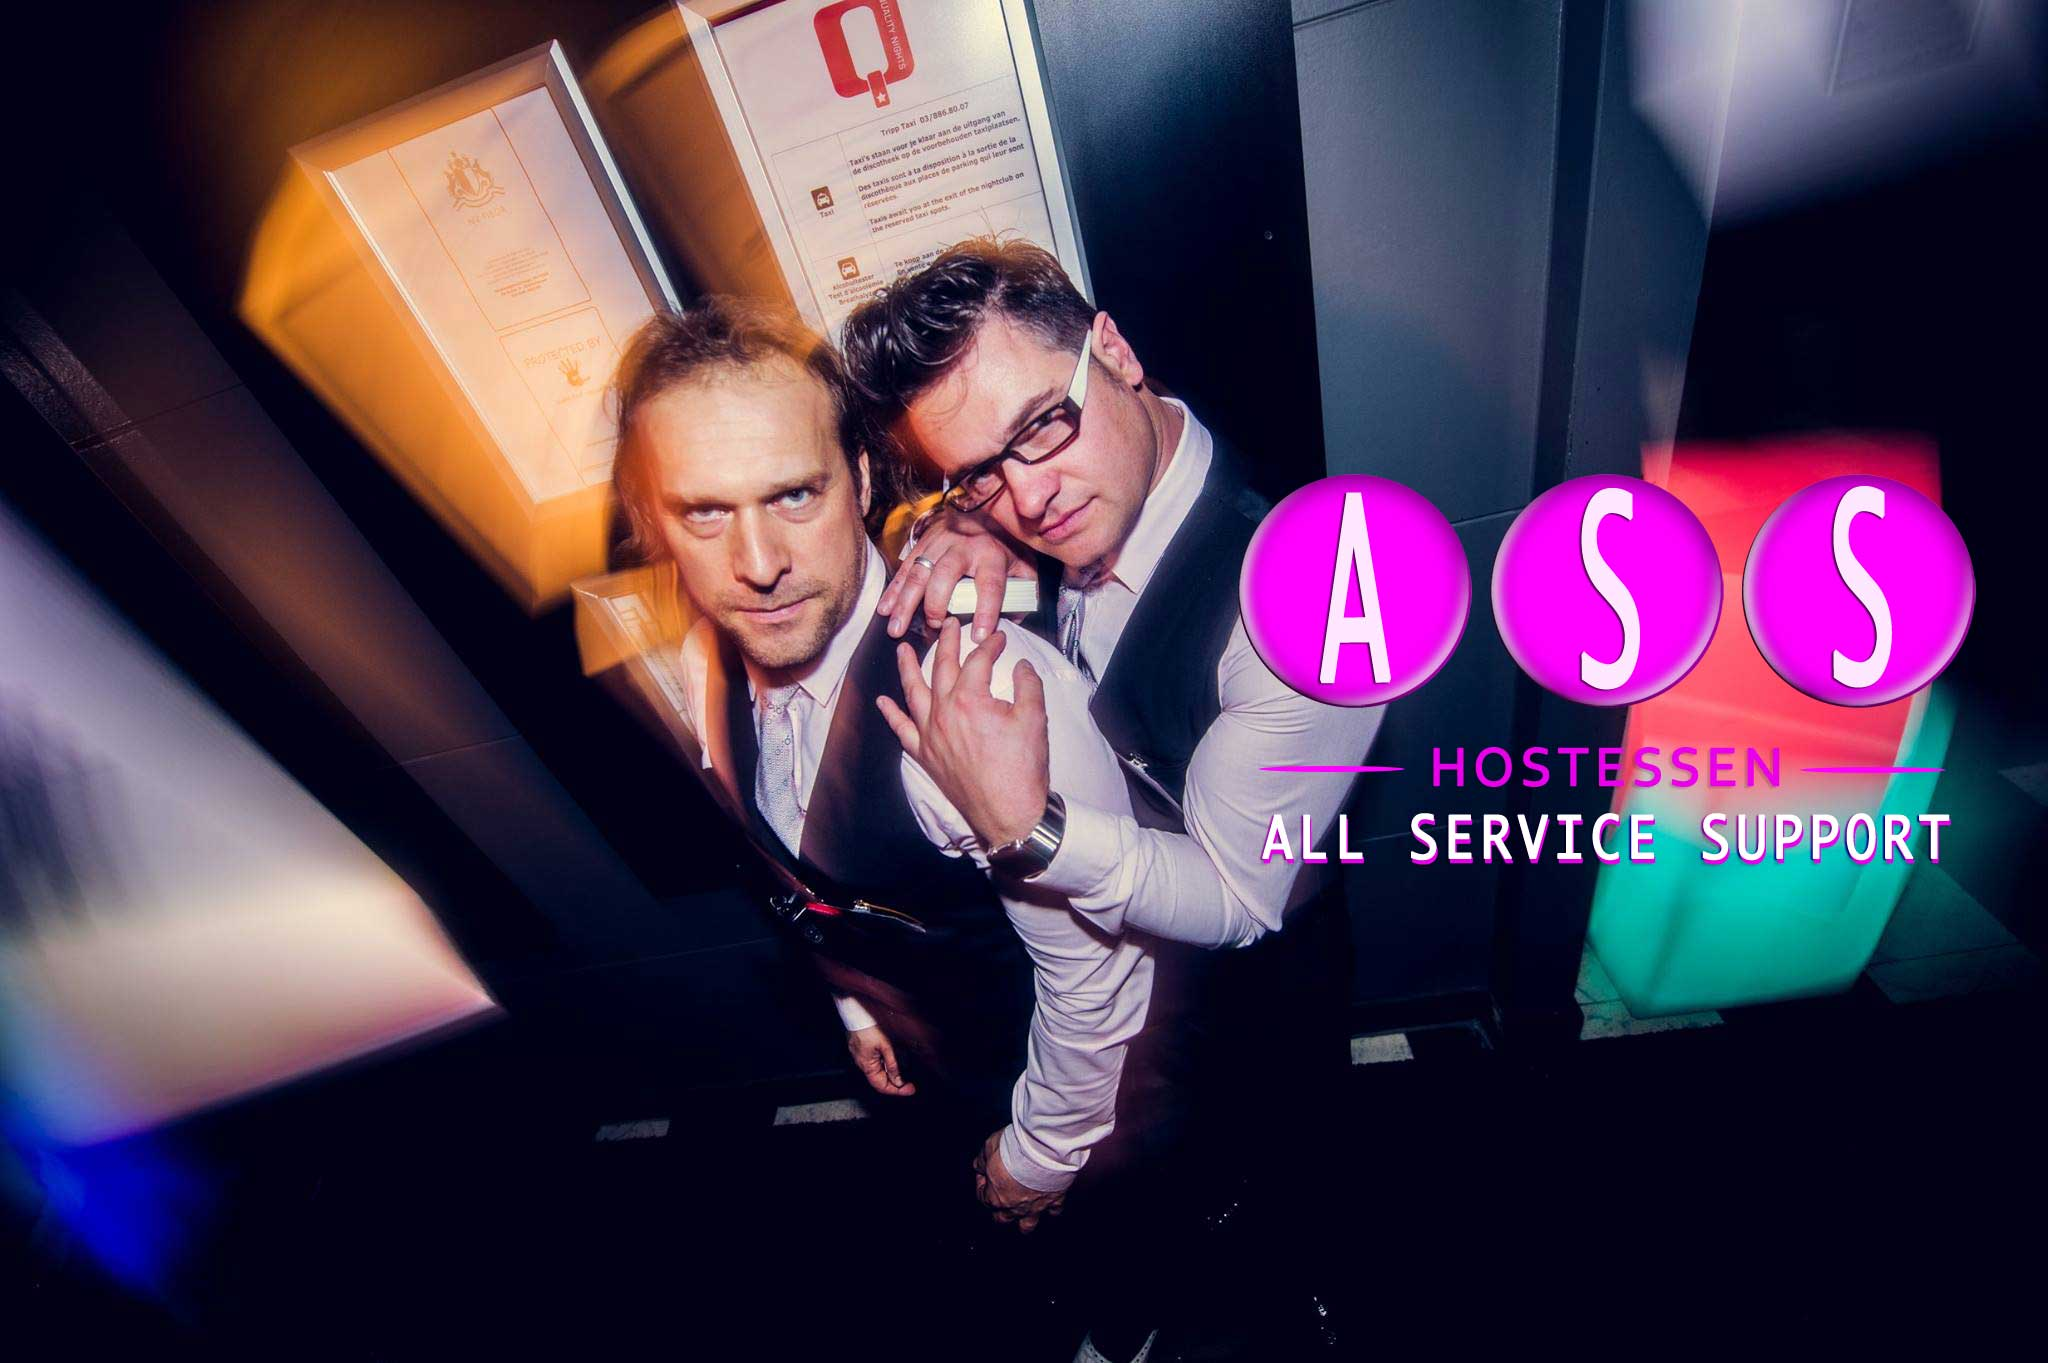 ASS-HOSTESSEN